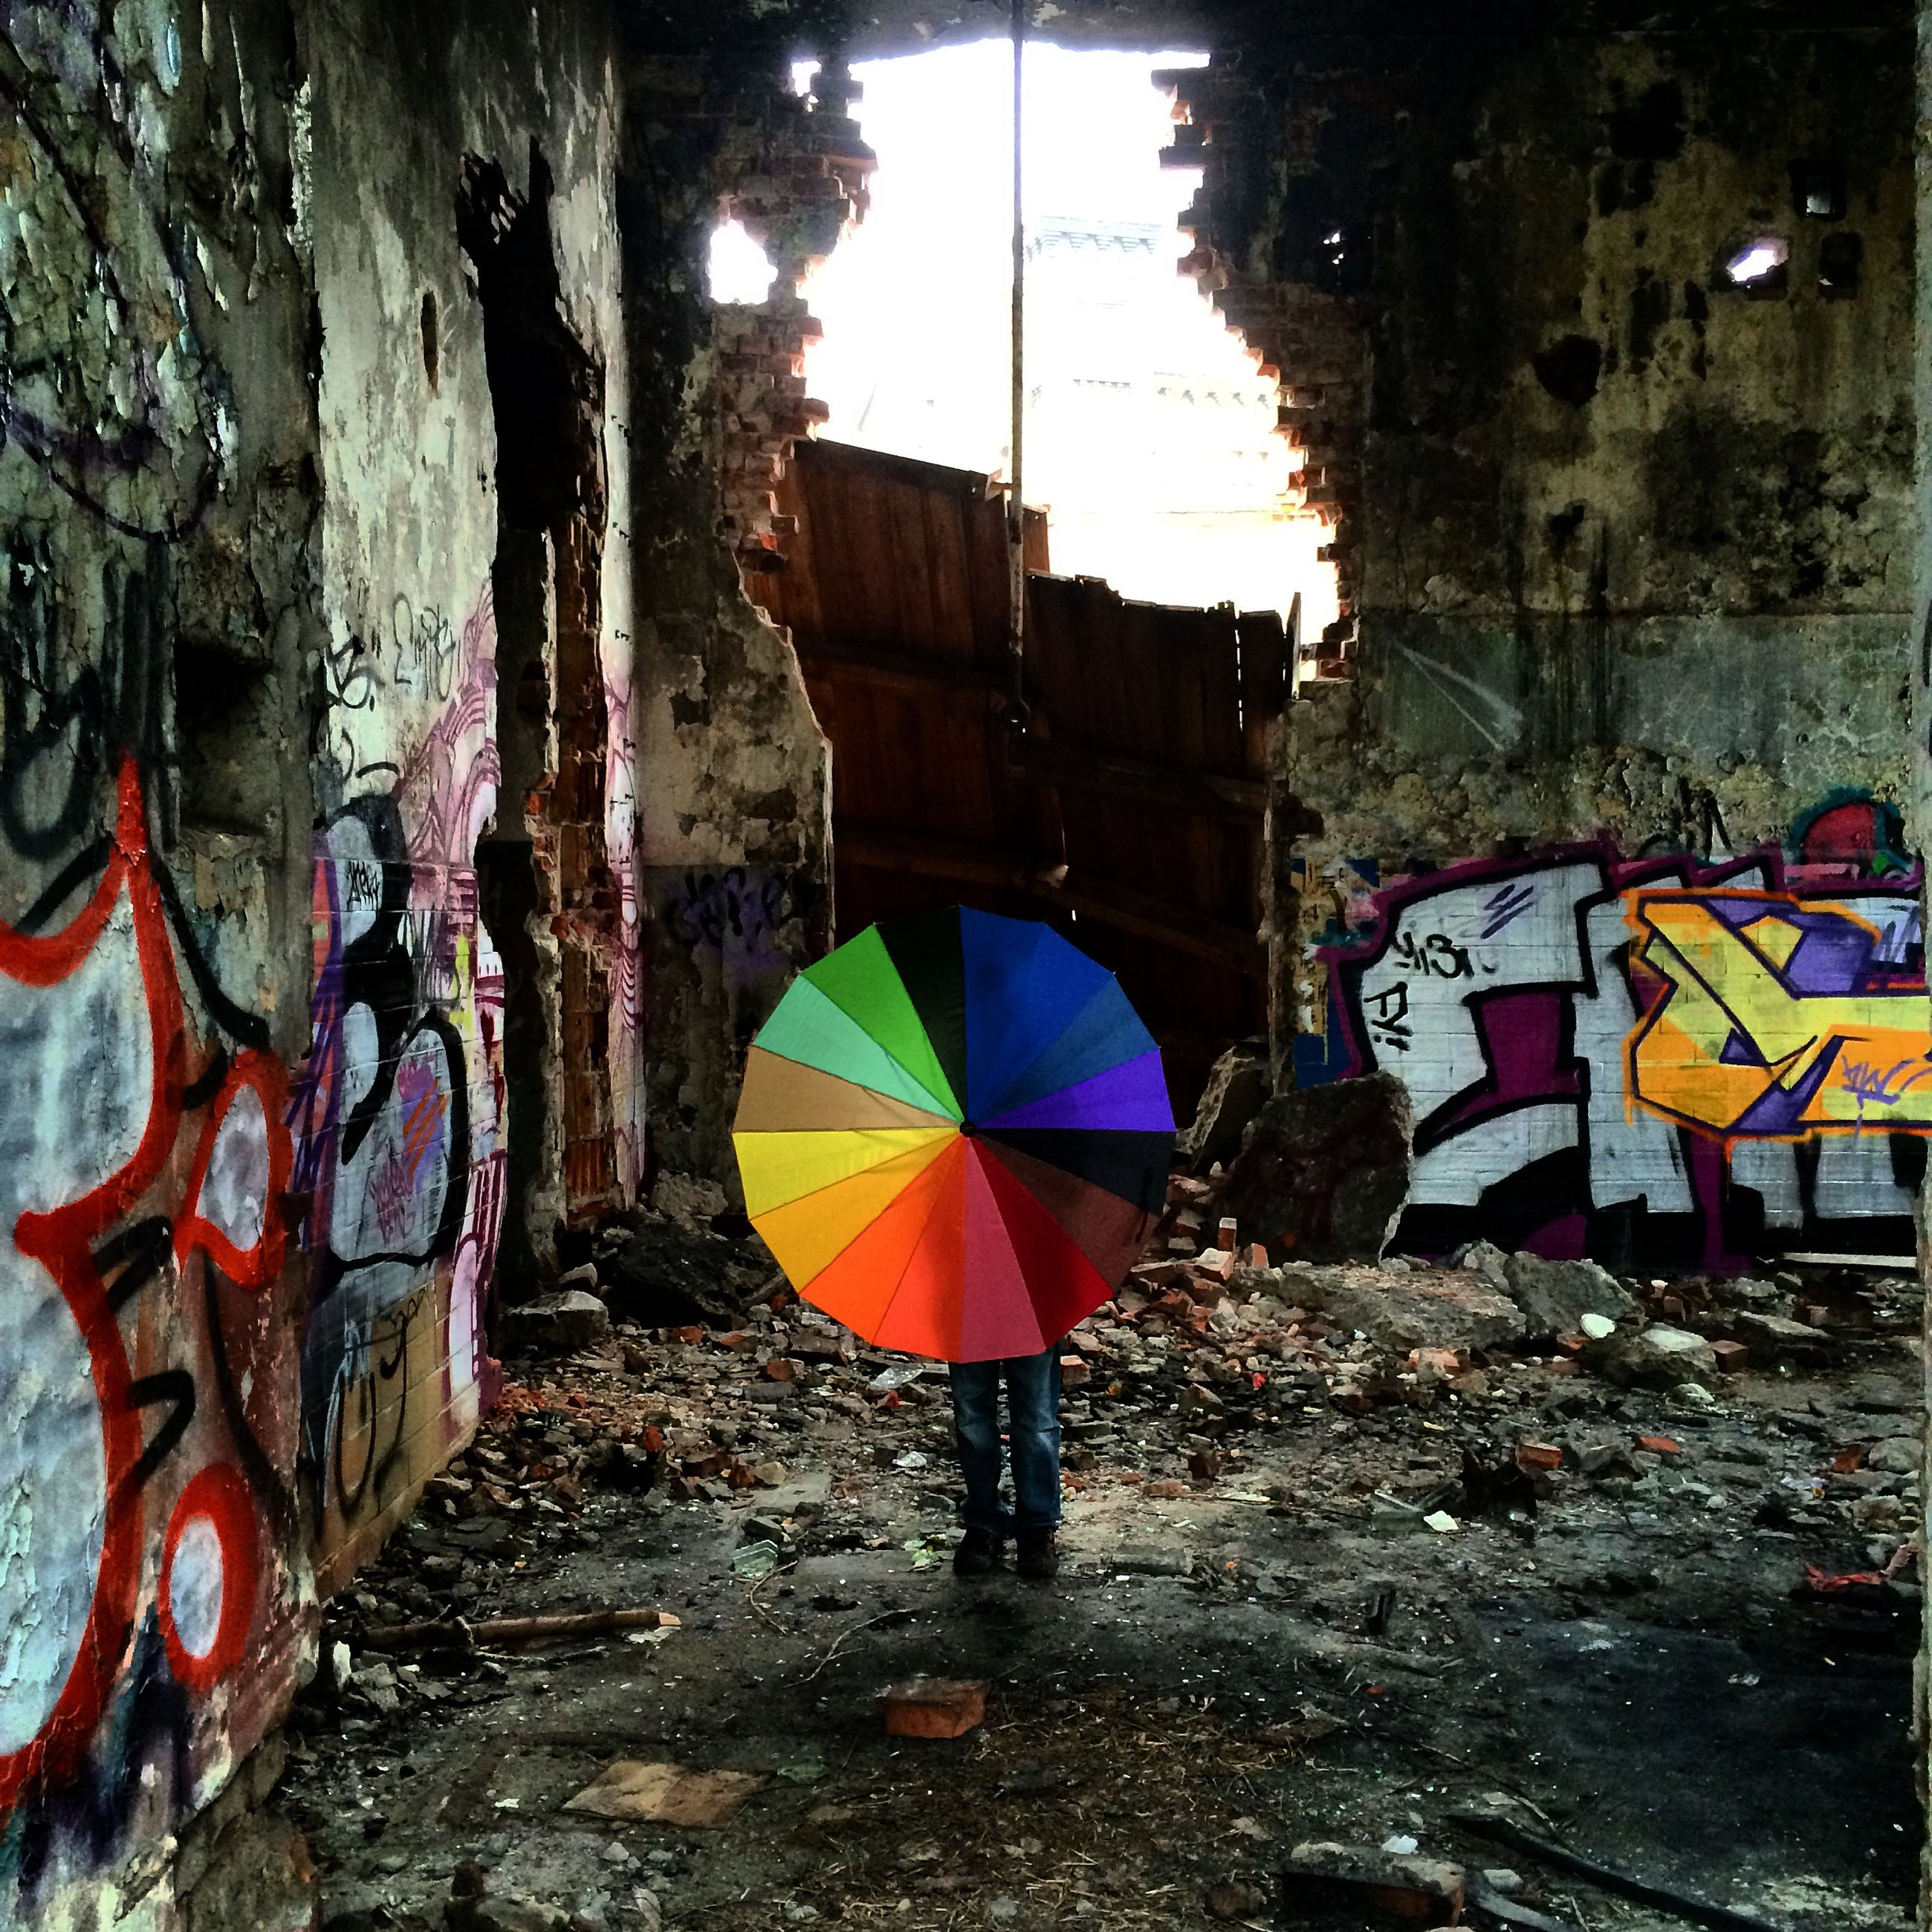 built structure, architecture, building exterior, graffiti, umbrella, day, multi colored, wall - building feature, building, flag, street, outdoors, sky, men, abandoned, tree, street art, hanging, yellow